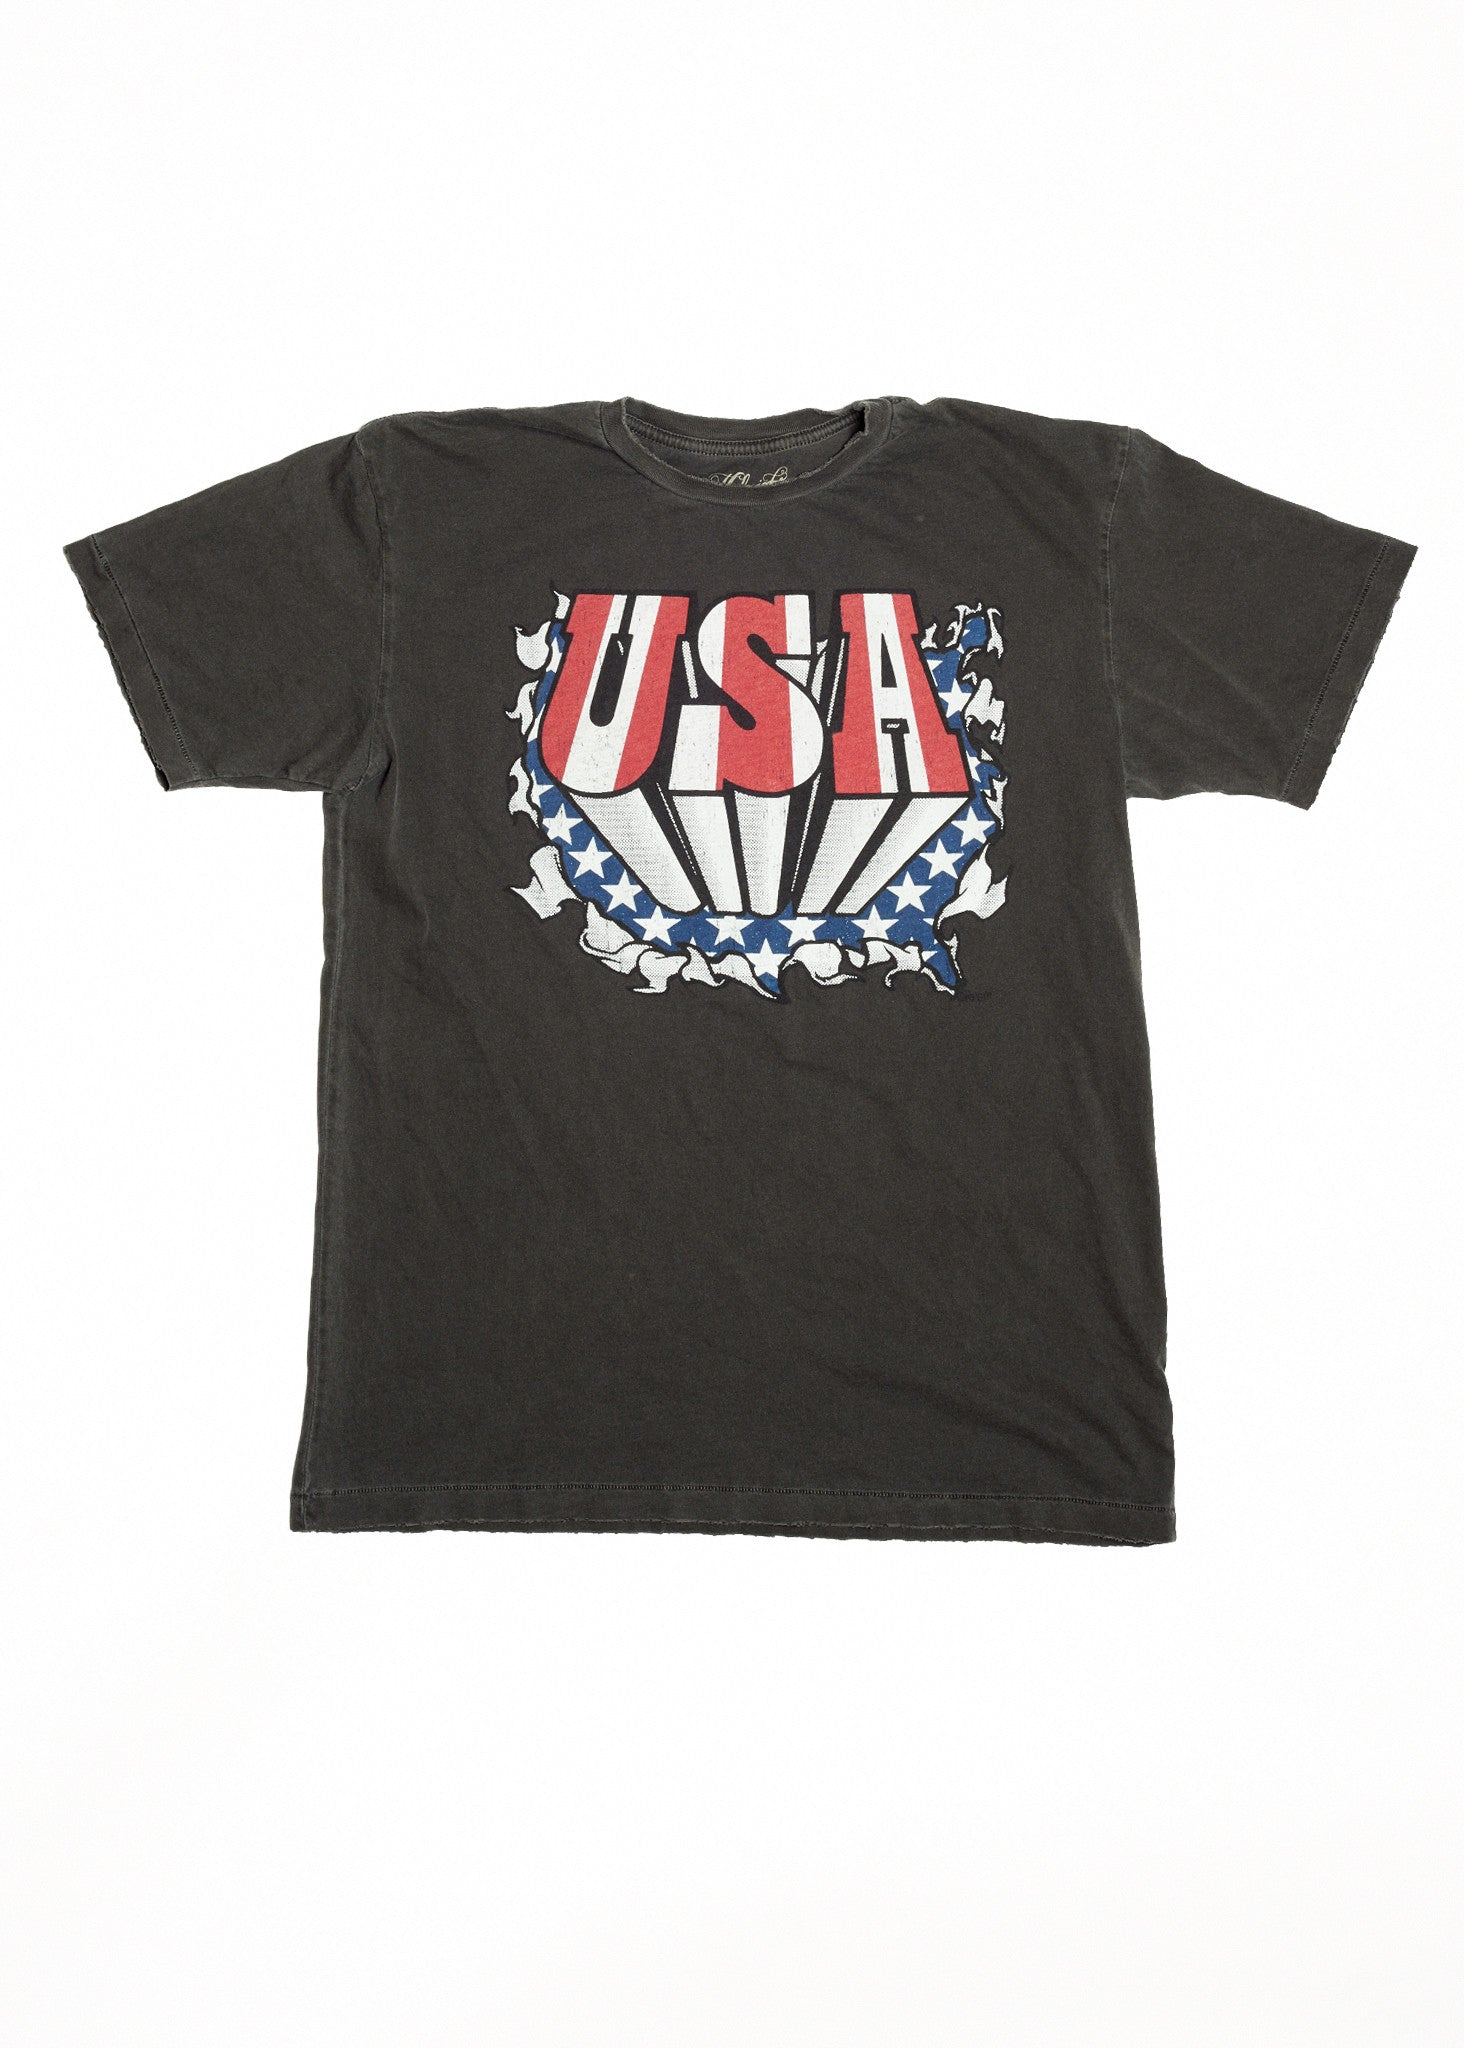 USA Men's Crew - Vintage Black